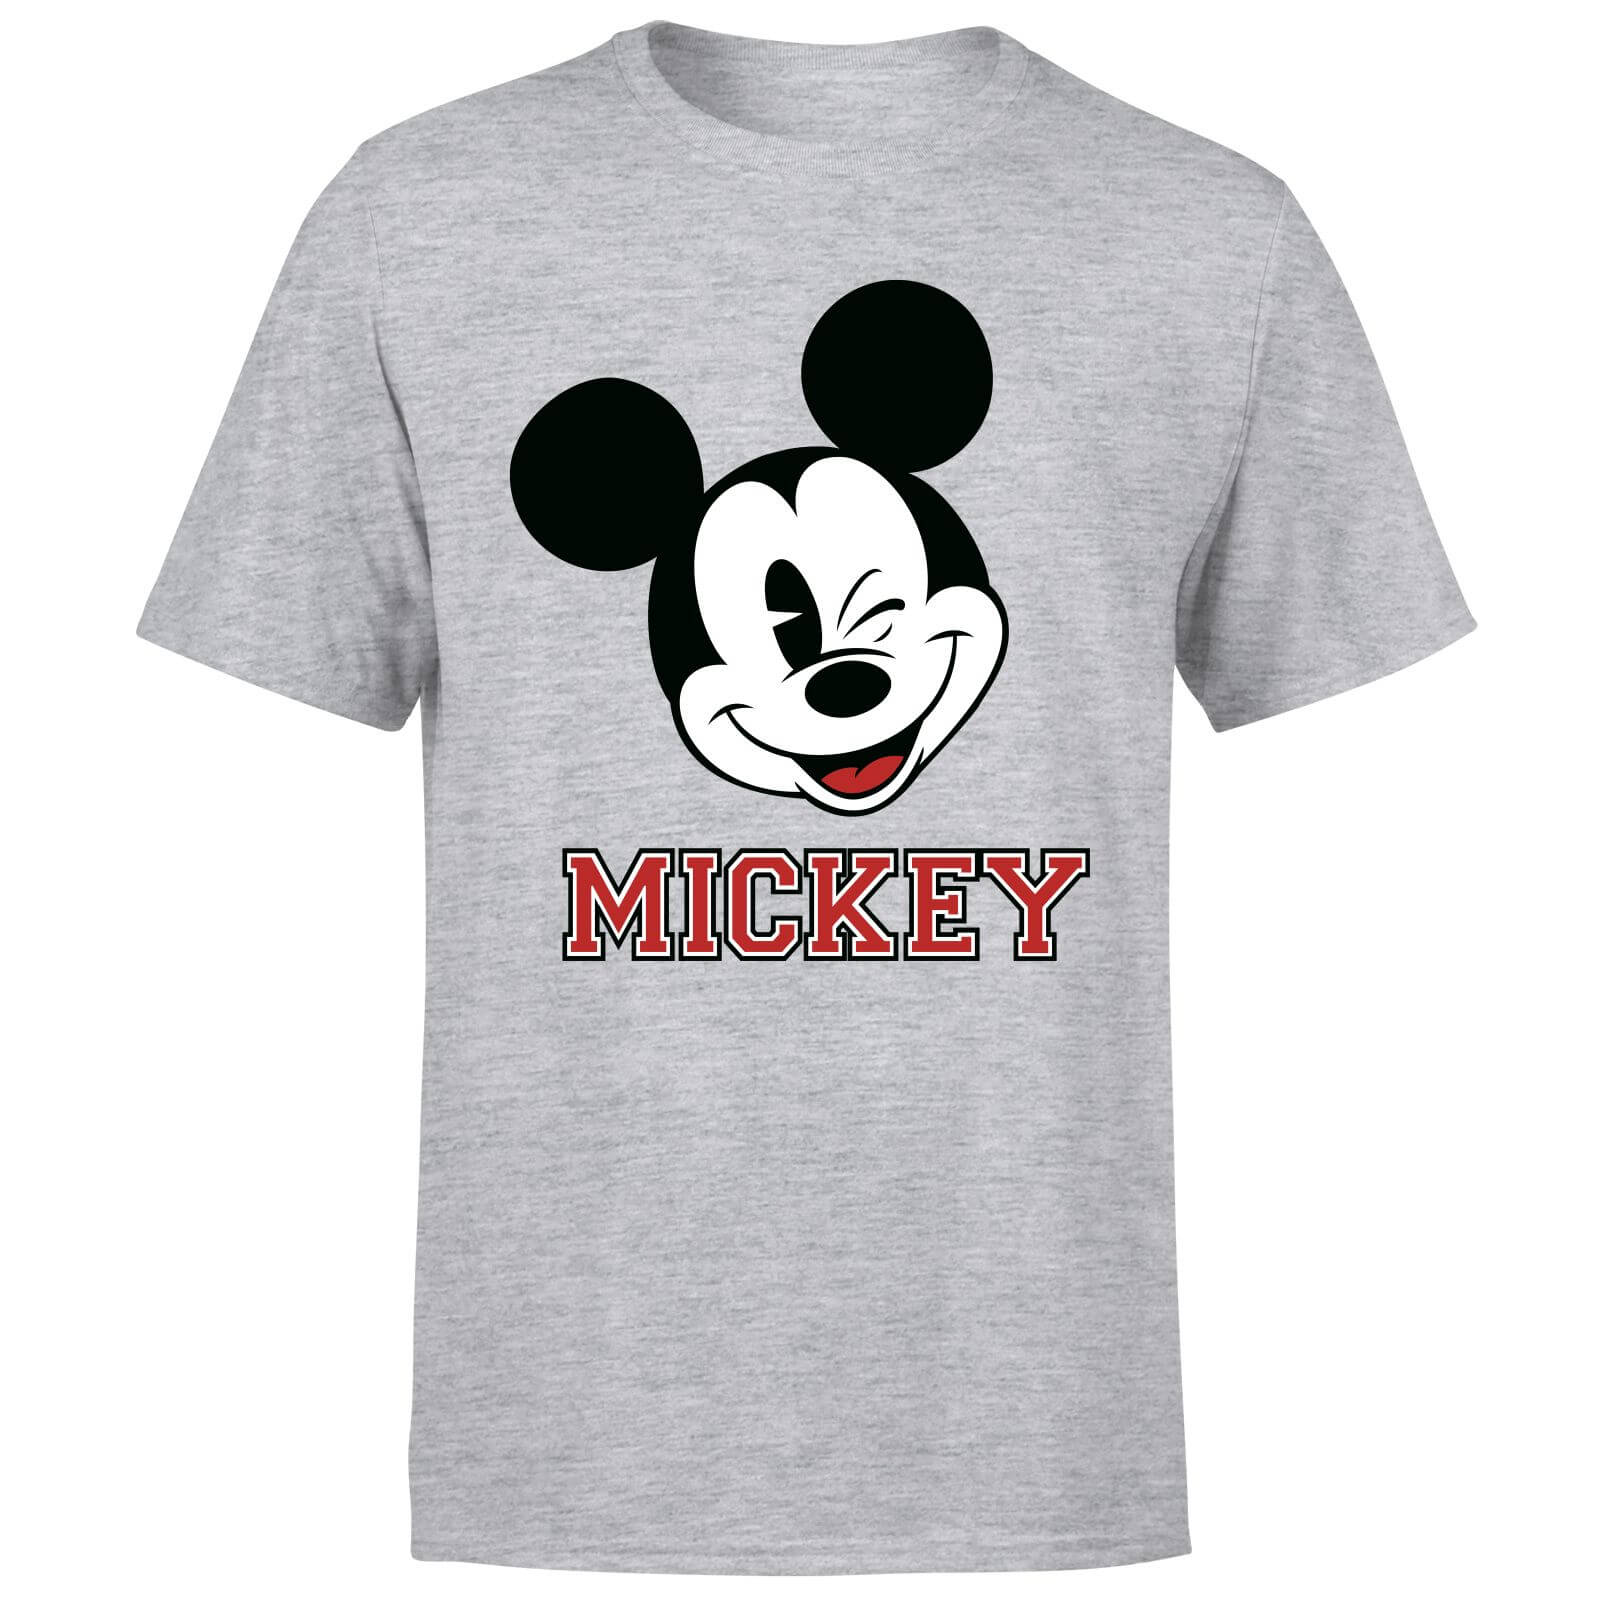 Disney Mickey Mouse Since 1928 T-Shirt - Grey